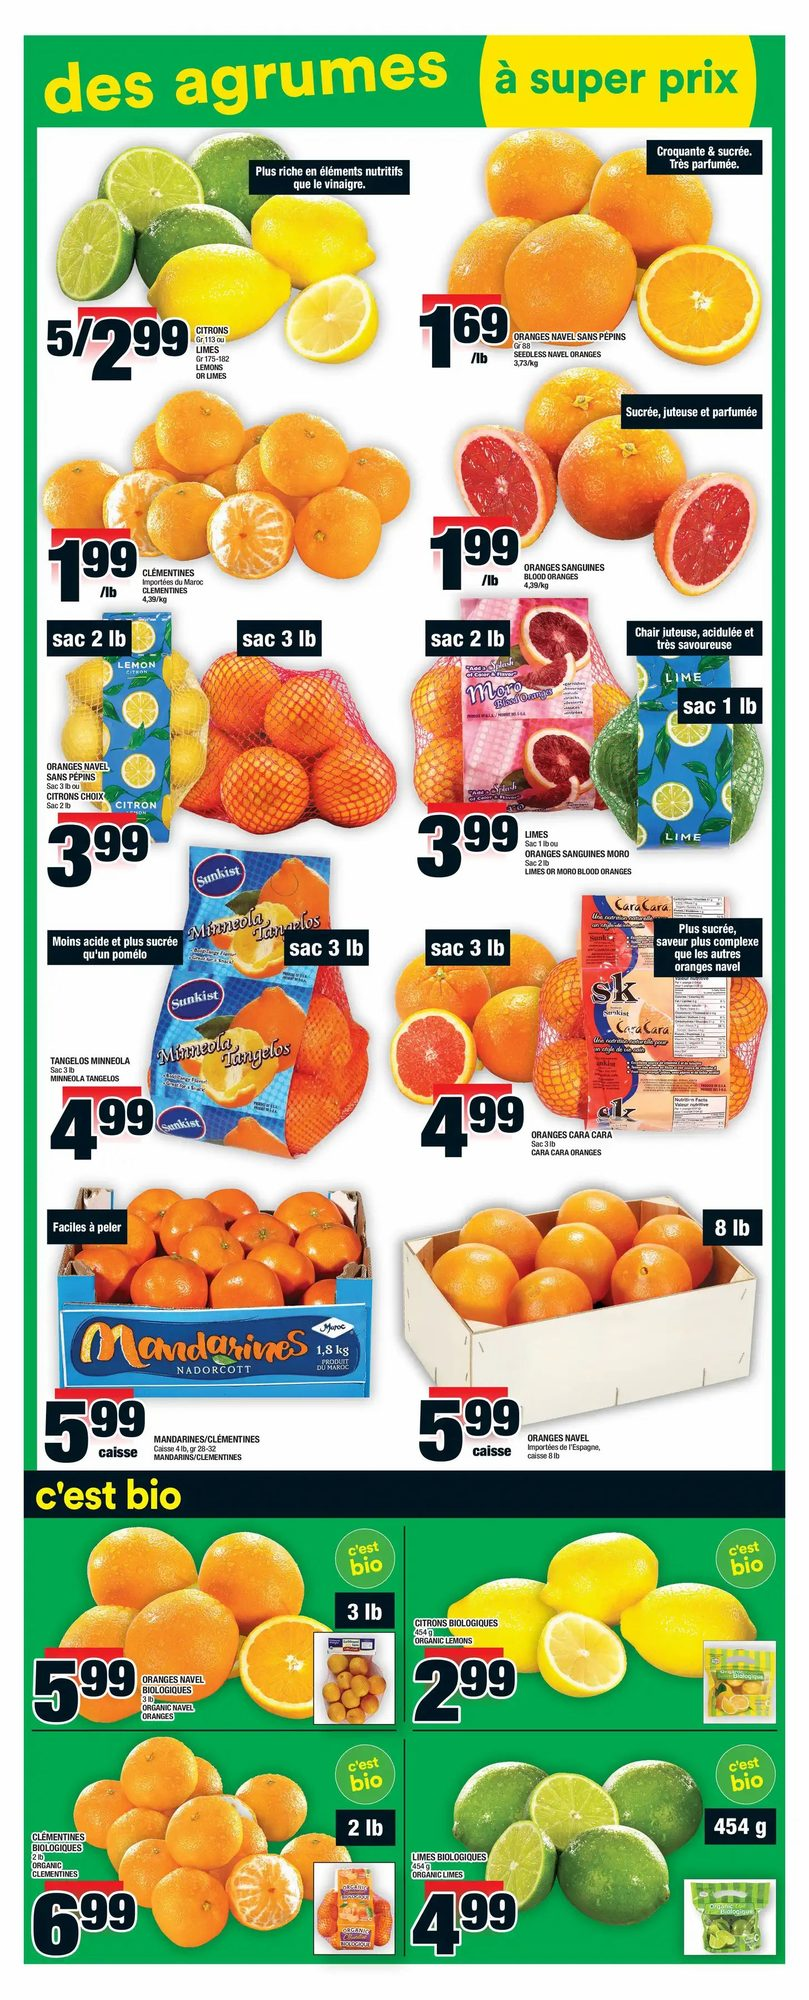 Super C - Weekly Flyer Specials - Page 11